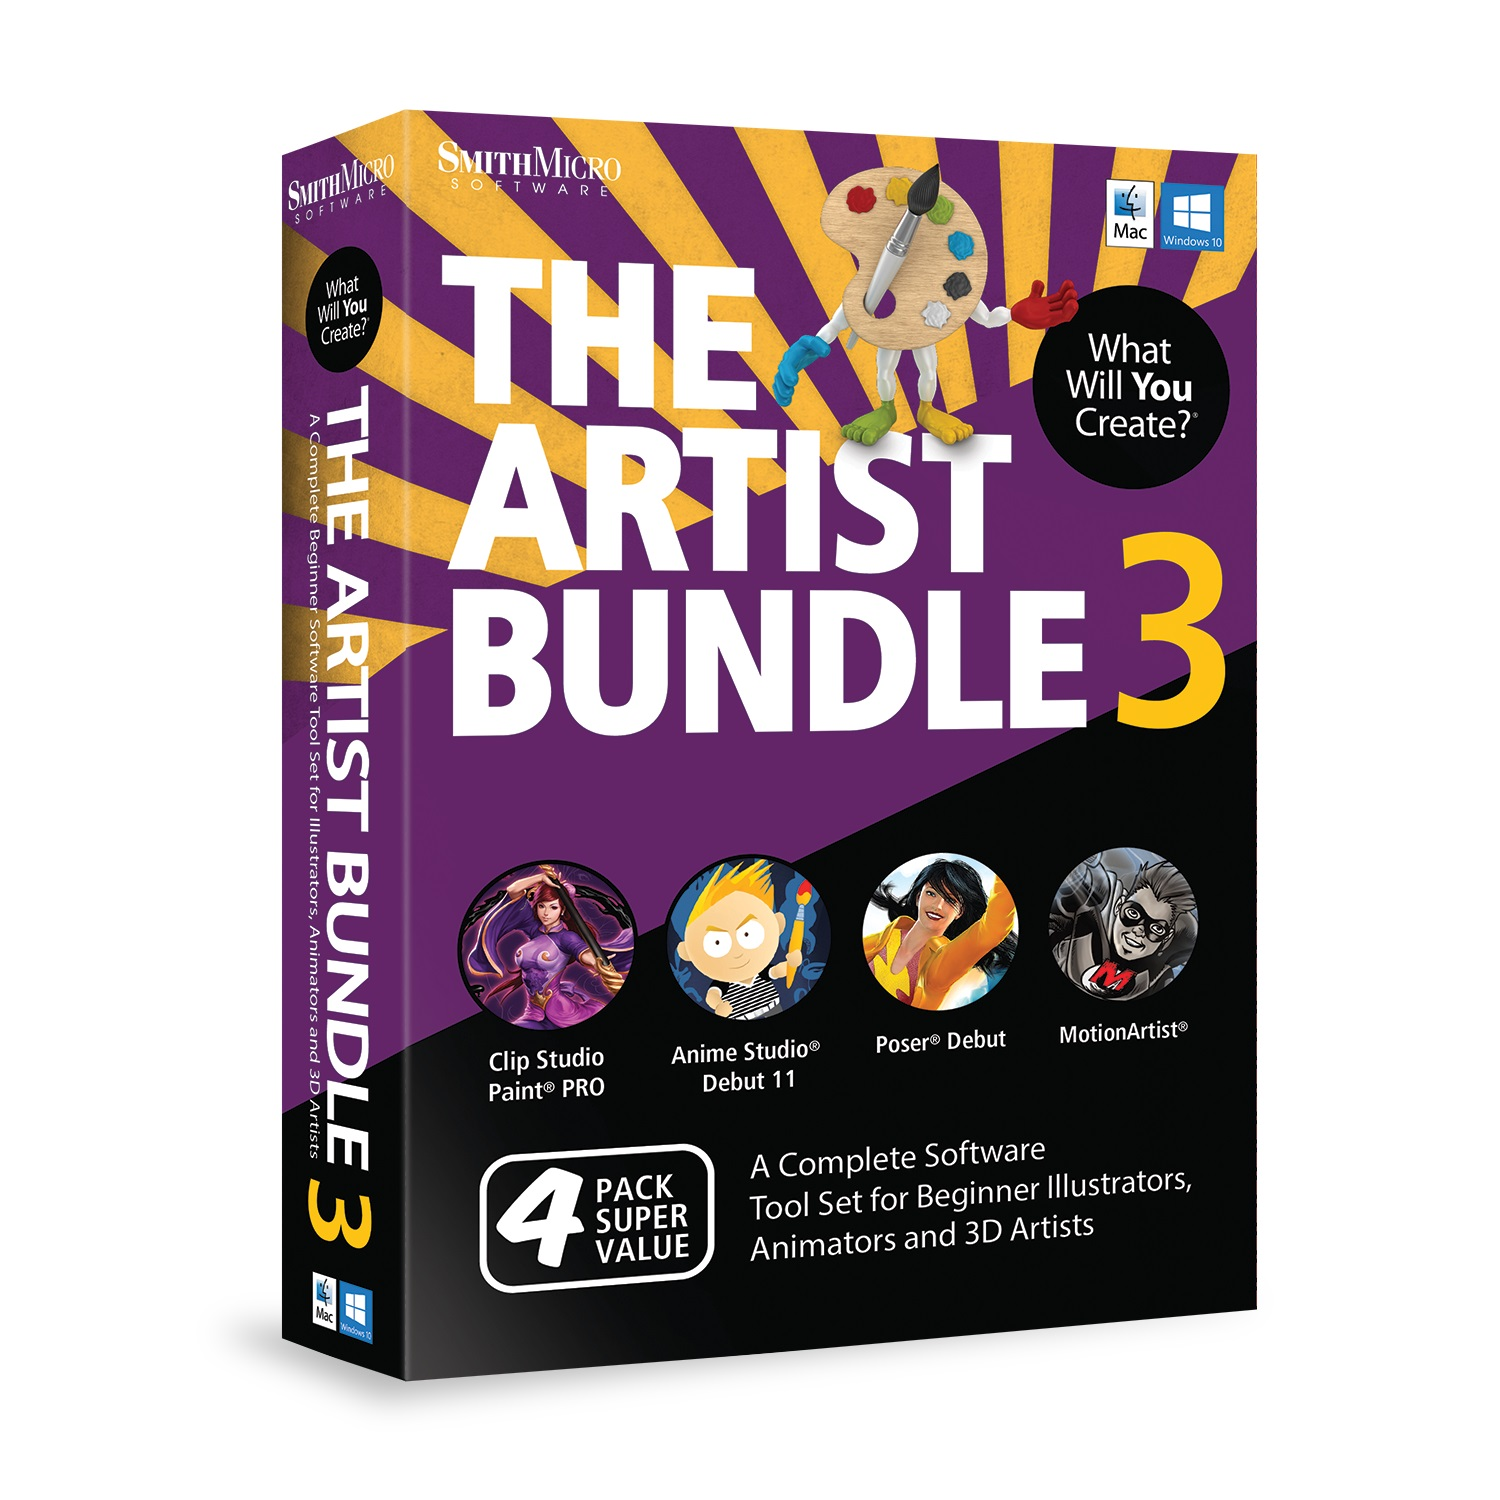 the-artist-bundle-3-download-2